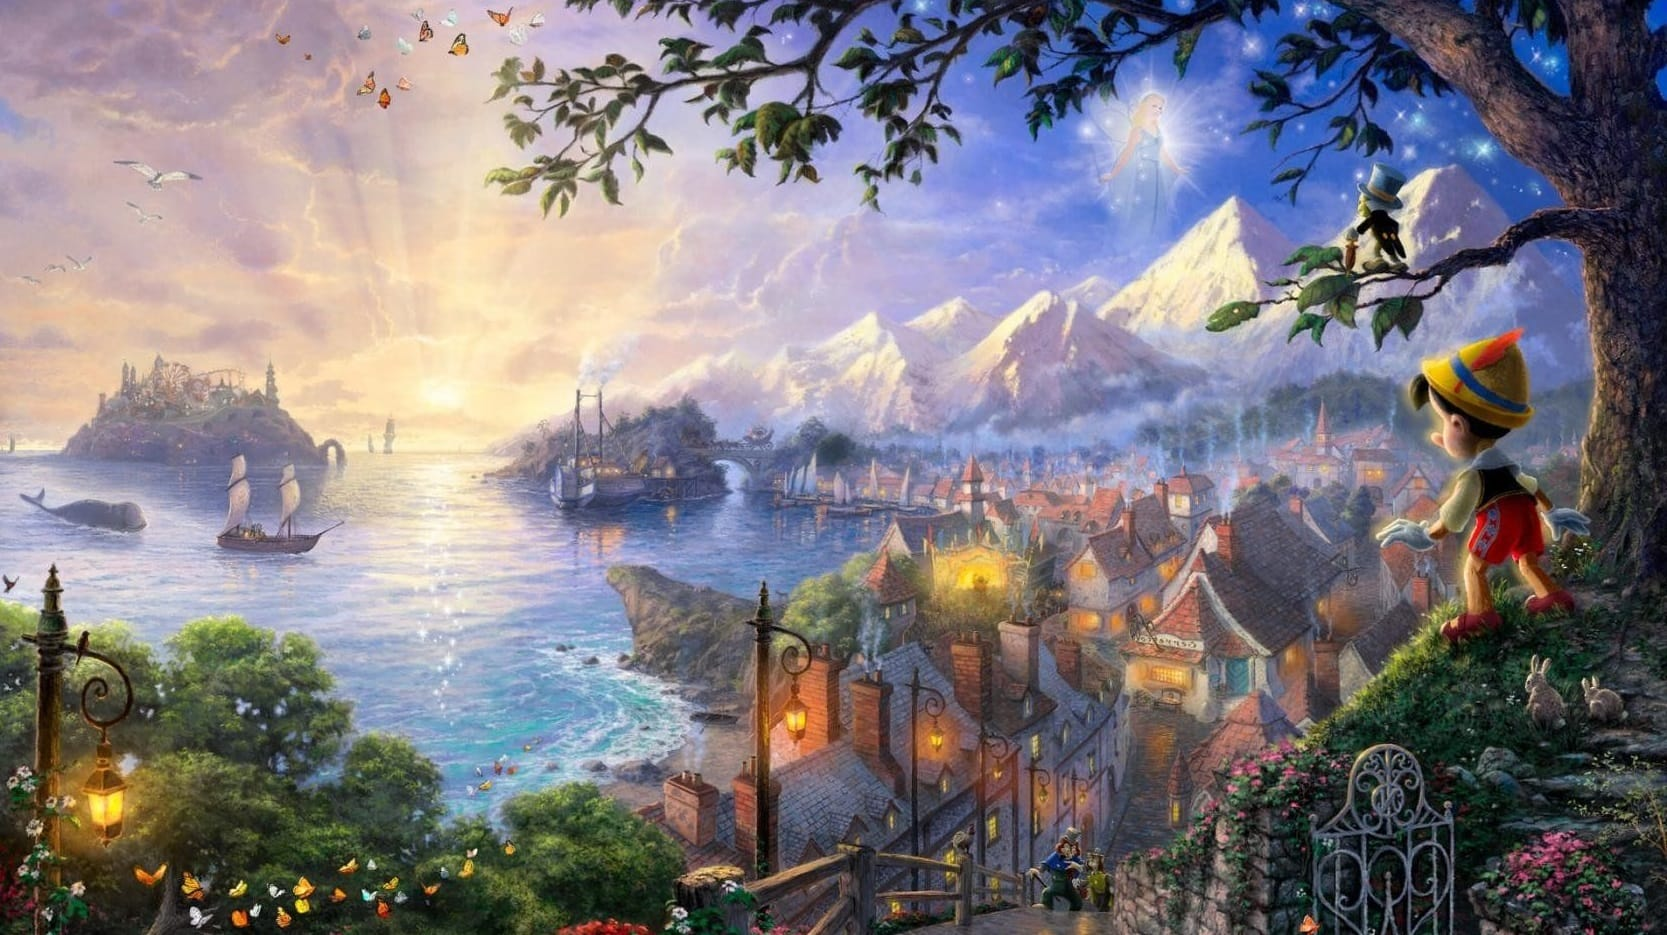 Pinocchio wallpapers hd 66921 6373241.jpgc2  1